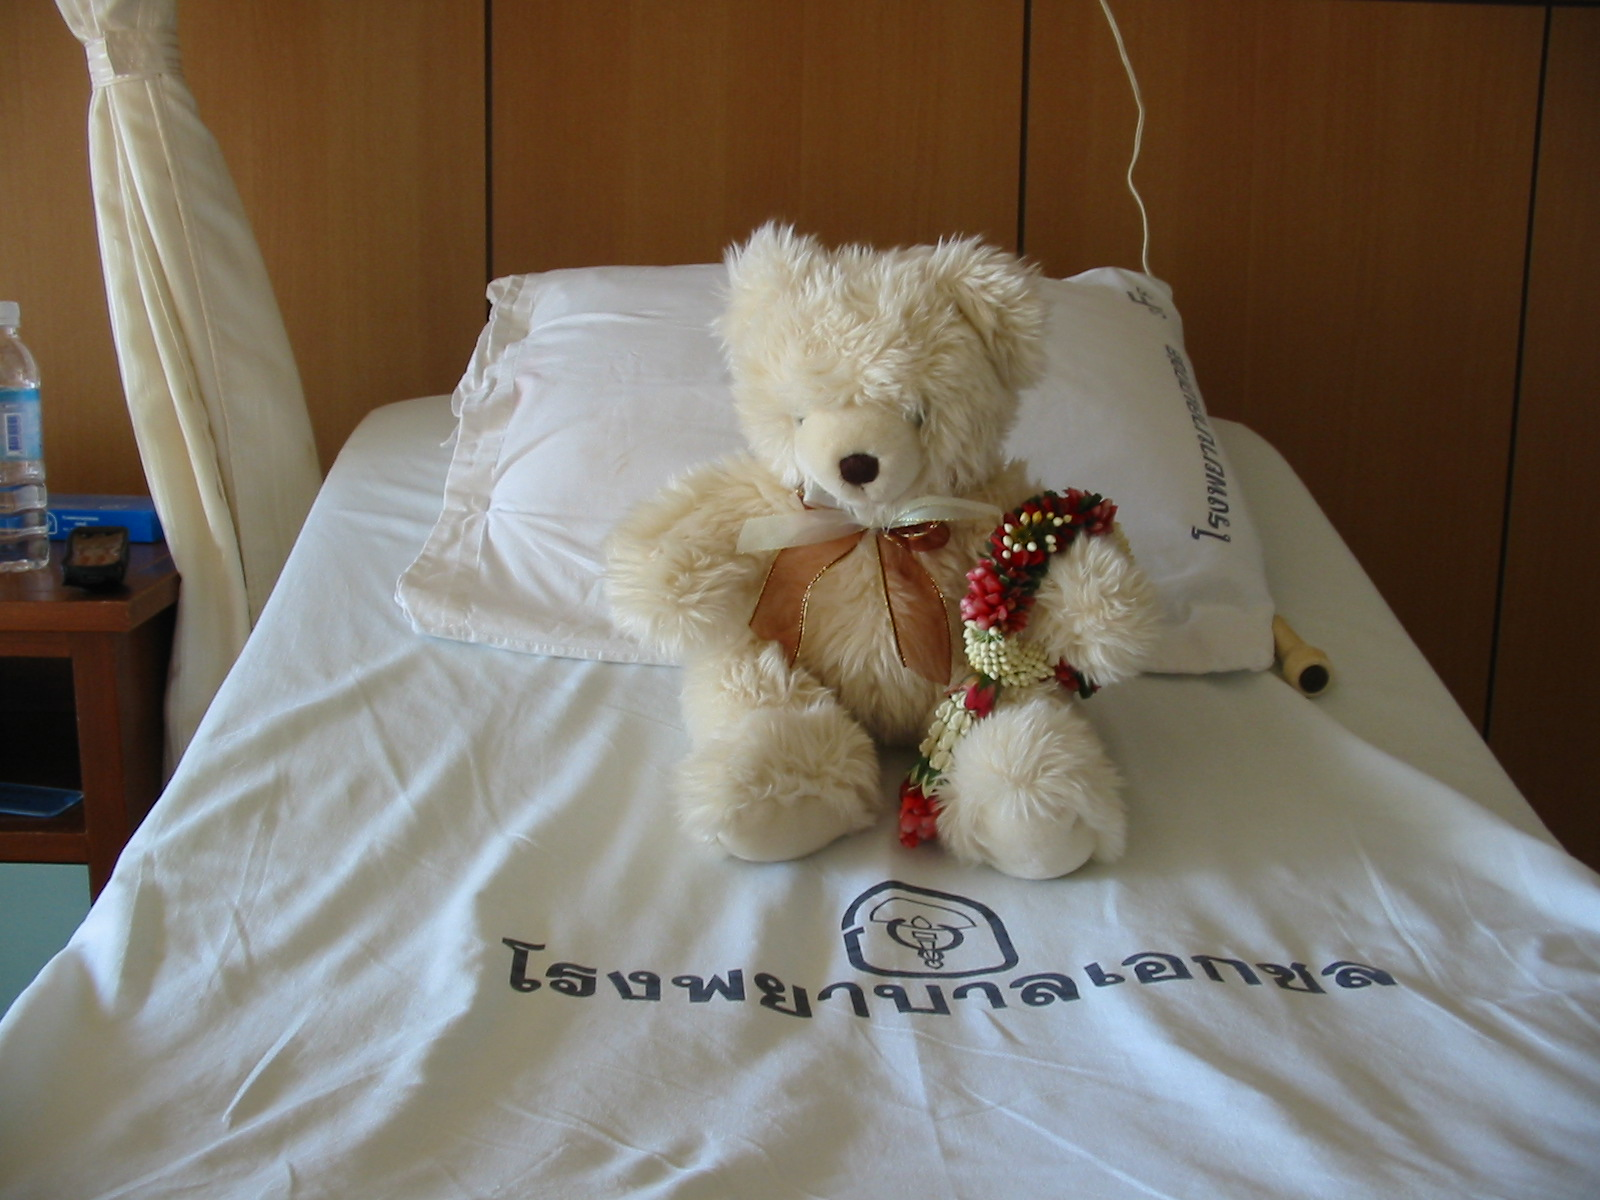 Sunrise (one of my two teddy bears) was my companion on this trip, while her boyfriend Tewkesbury looked after my room back home..